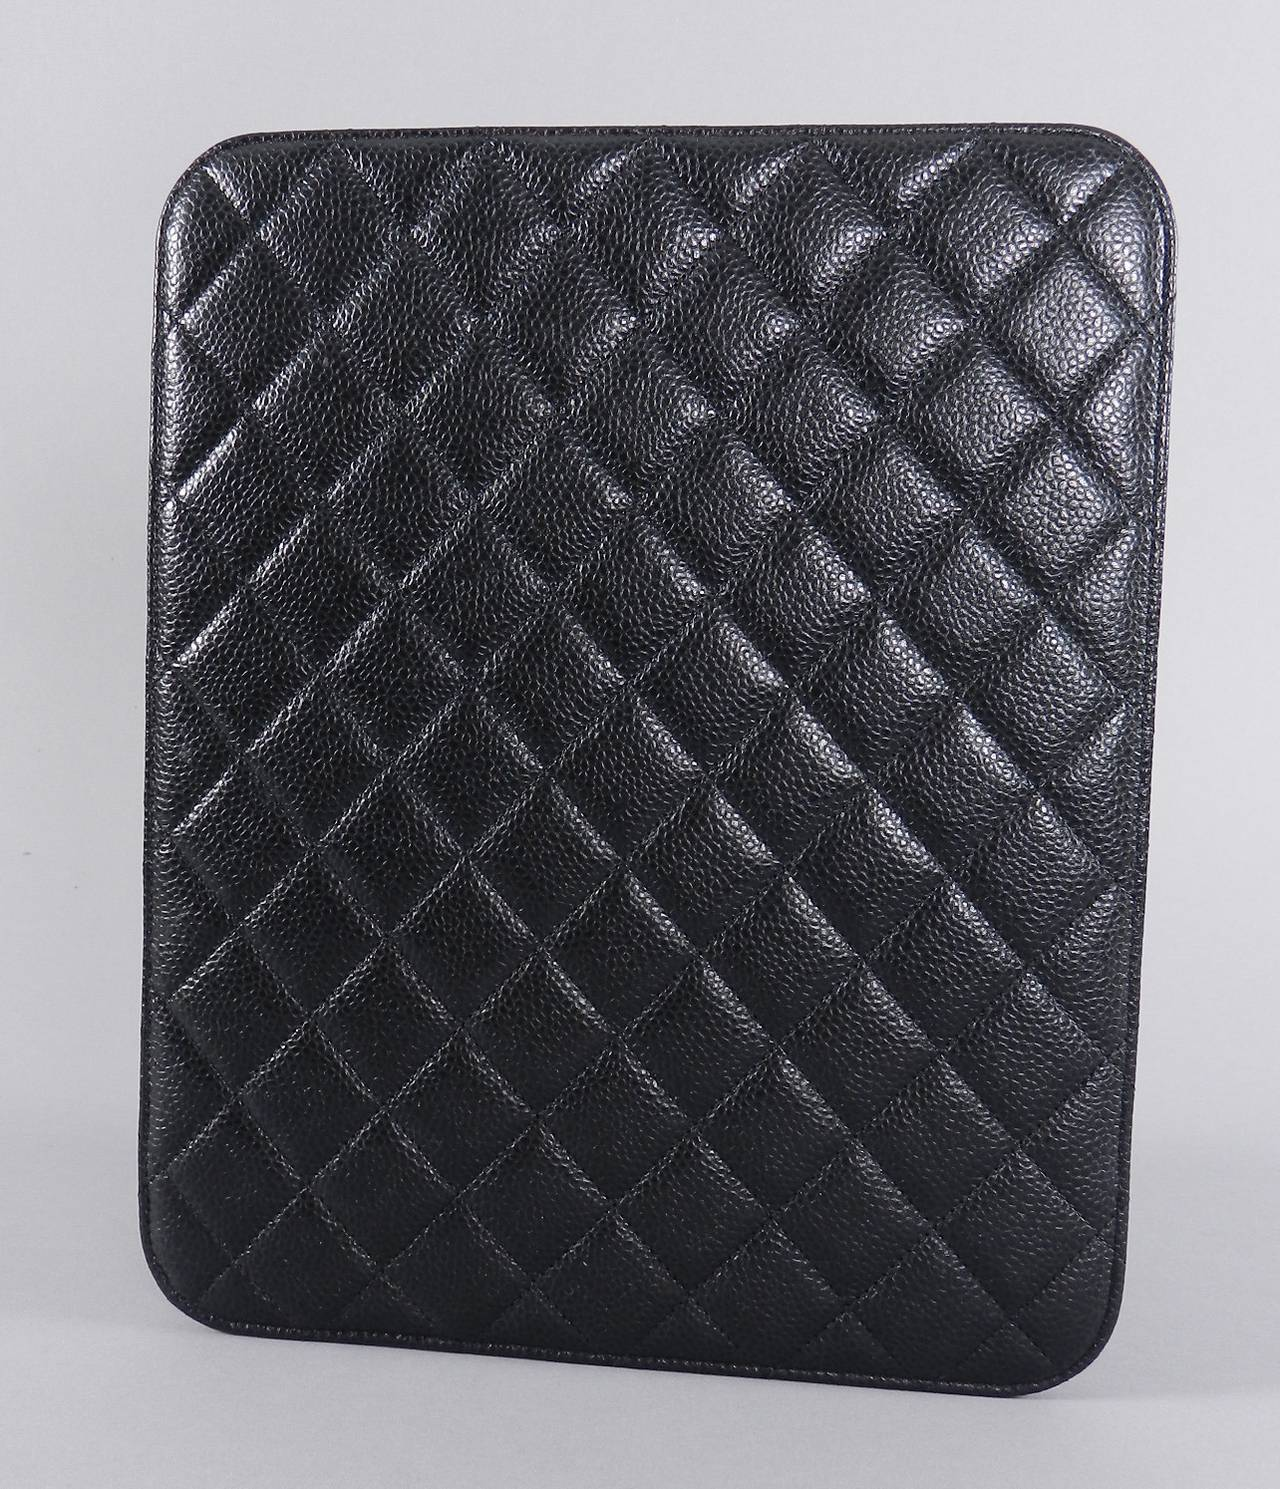 Chanel Black Caviar Ipad Case - Silvertone Hardware In Excellent Condition For Sale In Toronto, ON